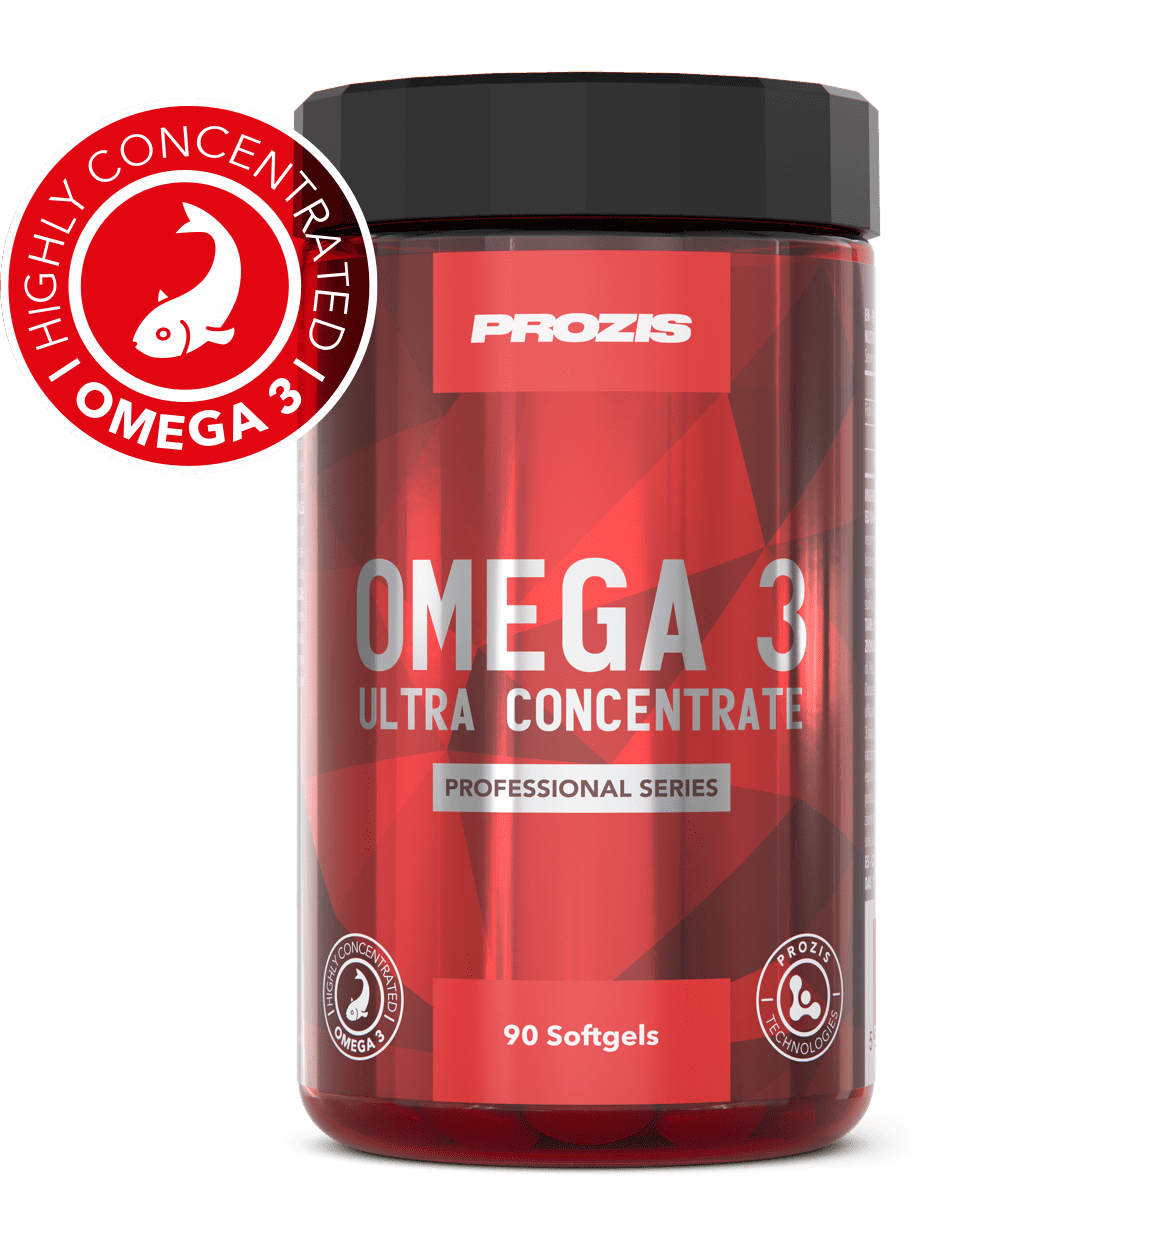 Omega 3 Ultra Concentrate Professional